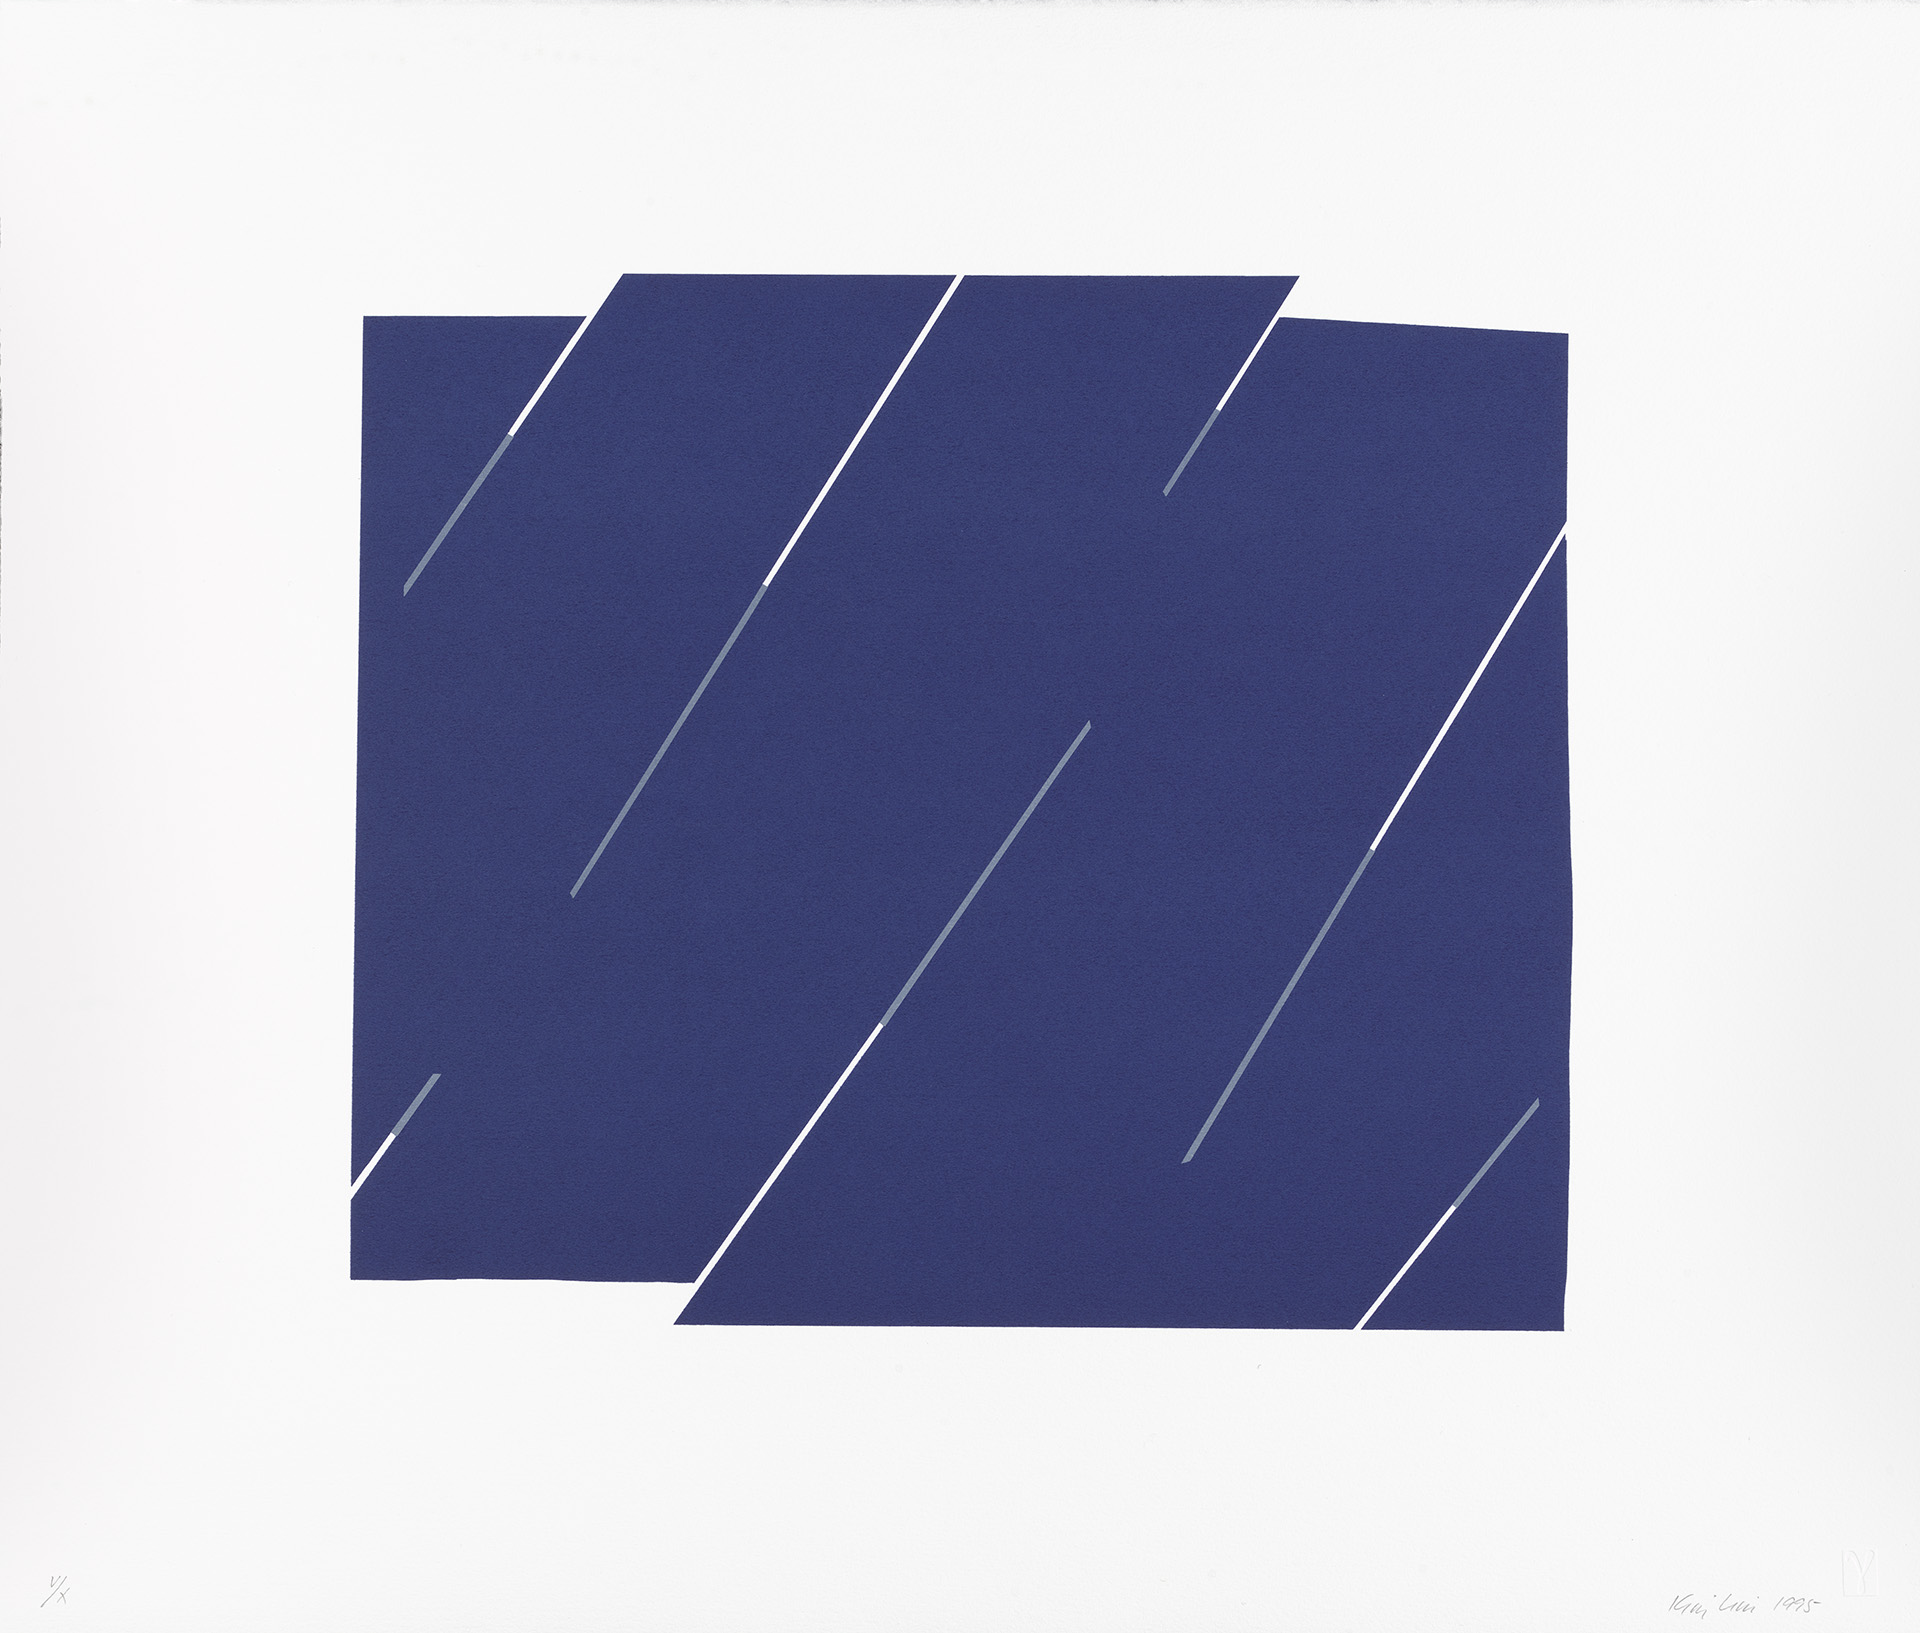 Kim Lim, Syncopation, 1996, screen print on paper, Yale Center for British Art, Gift of the Kasser / Mochary Family Foundation, © Kim Lim / Artists Rights Society, NY / DACS, London